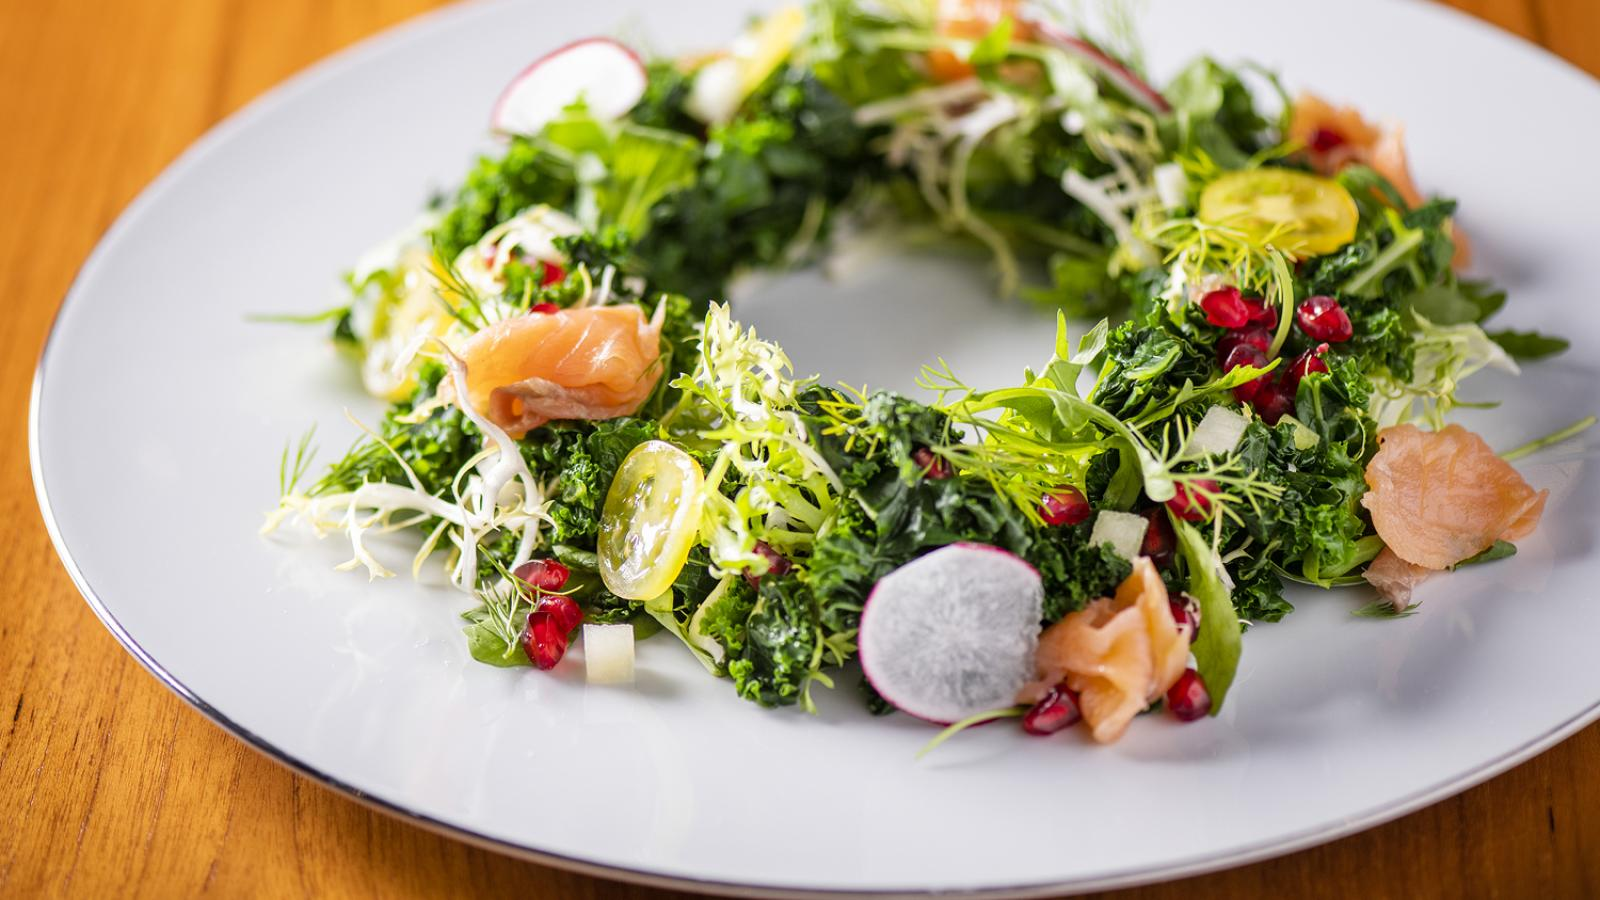 Delicious and healthy Kale Salad recipe by The Westin Doha Hotel & Spa